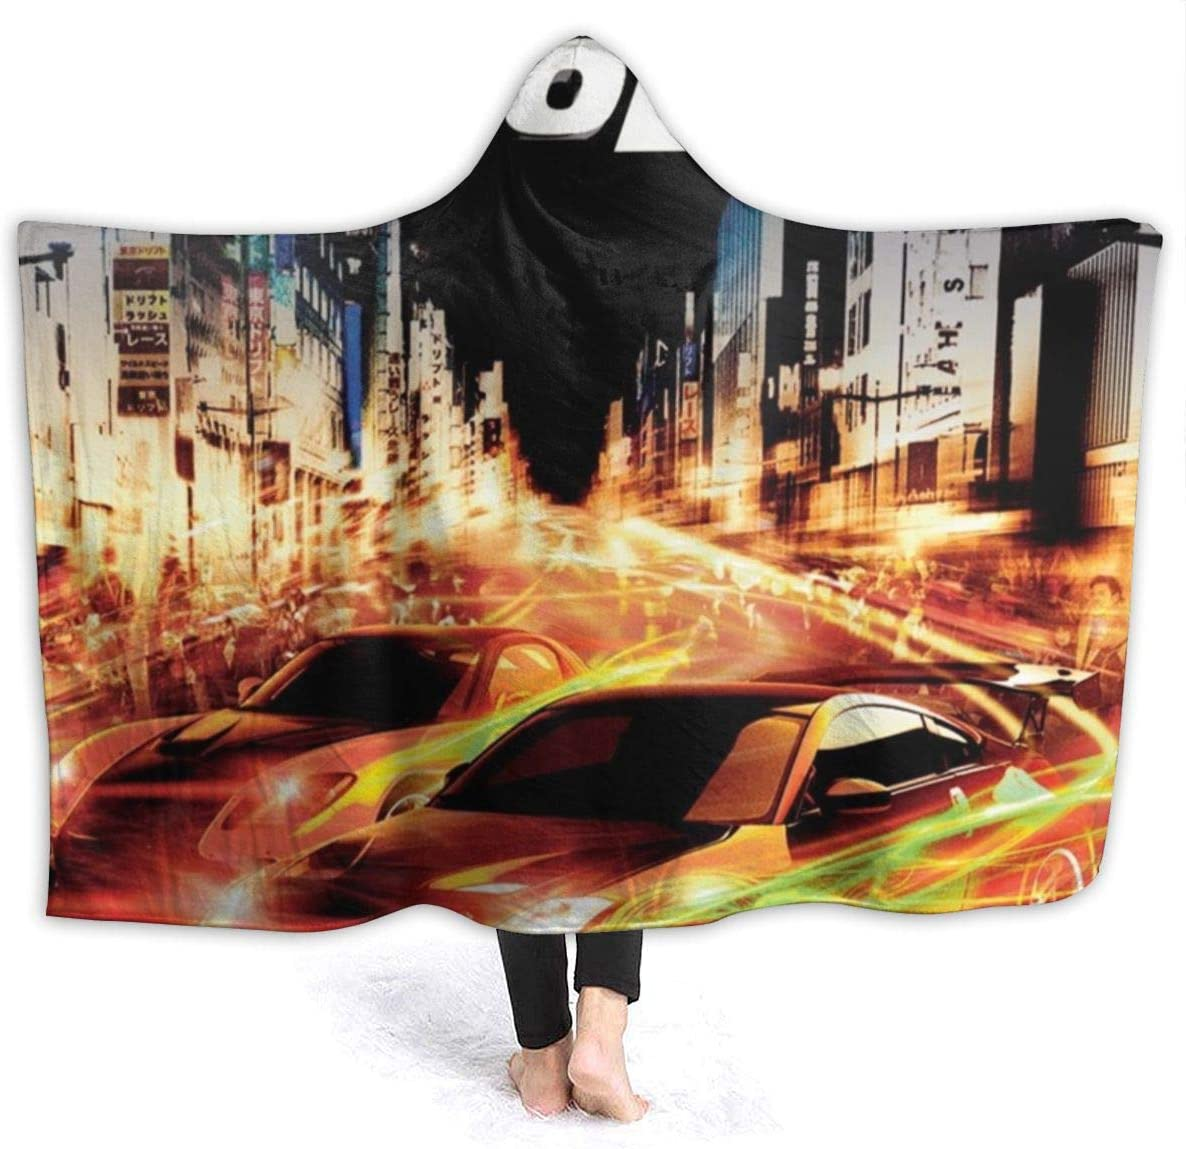 MCFUNTEE The Fast and The Furious-Tokyo Drift Ultra-Soft Micro Fleece Blanket for Bed Car Camp Couch Cozy Plush Throw Blankets for Adults Or Kids